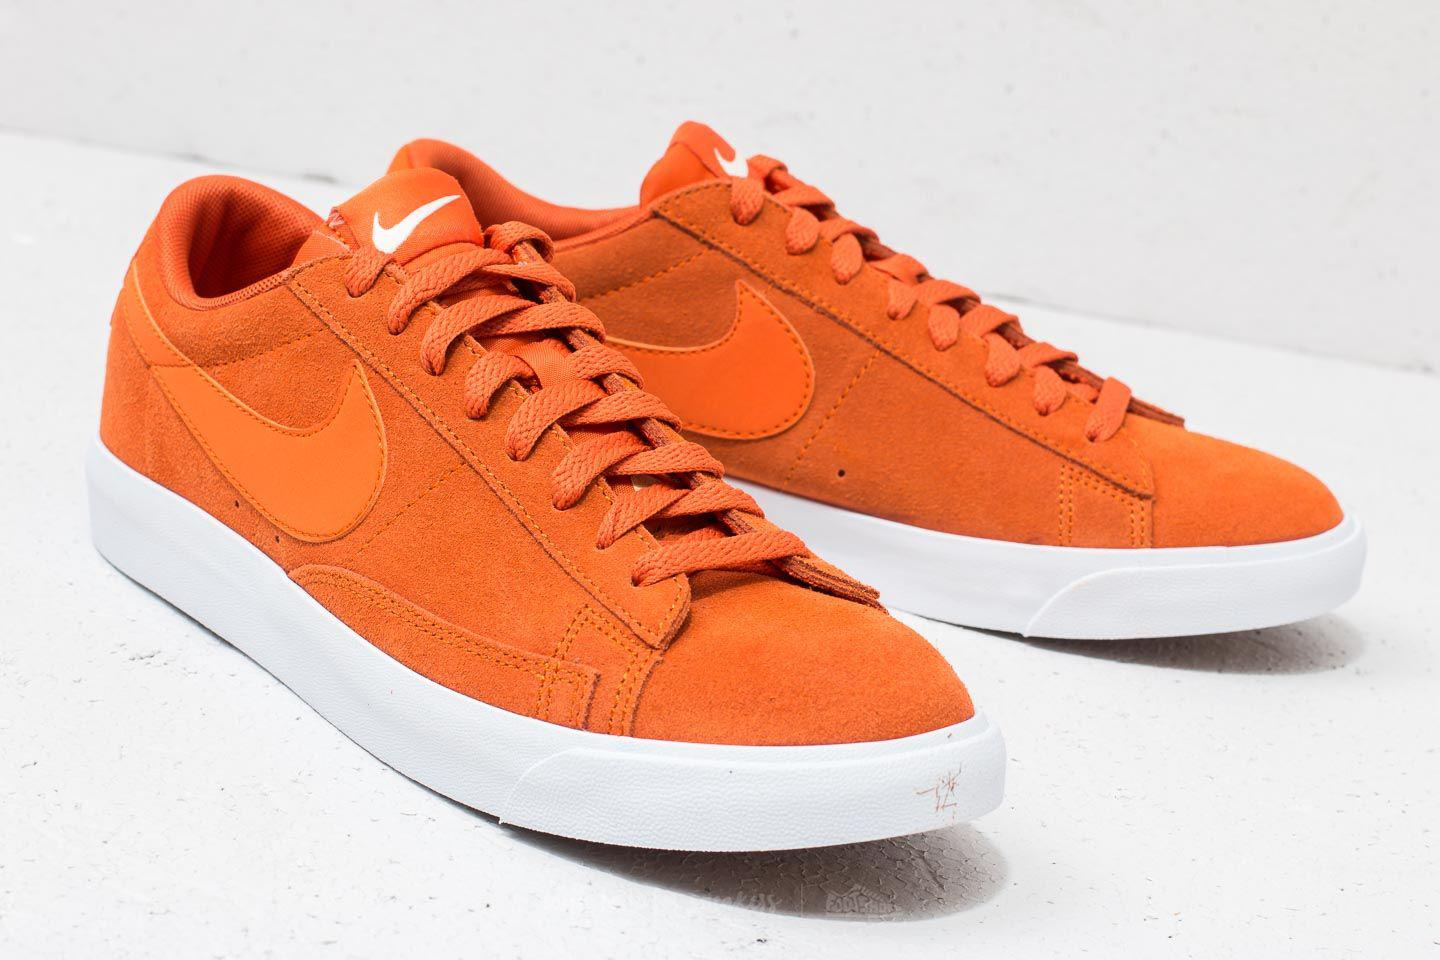 newest 282b6 8a692 ... inexpensive nike blazer low suede campfire orange for men lyst. view  fullscreen 01dd2 90557